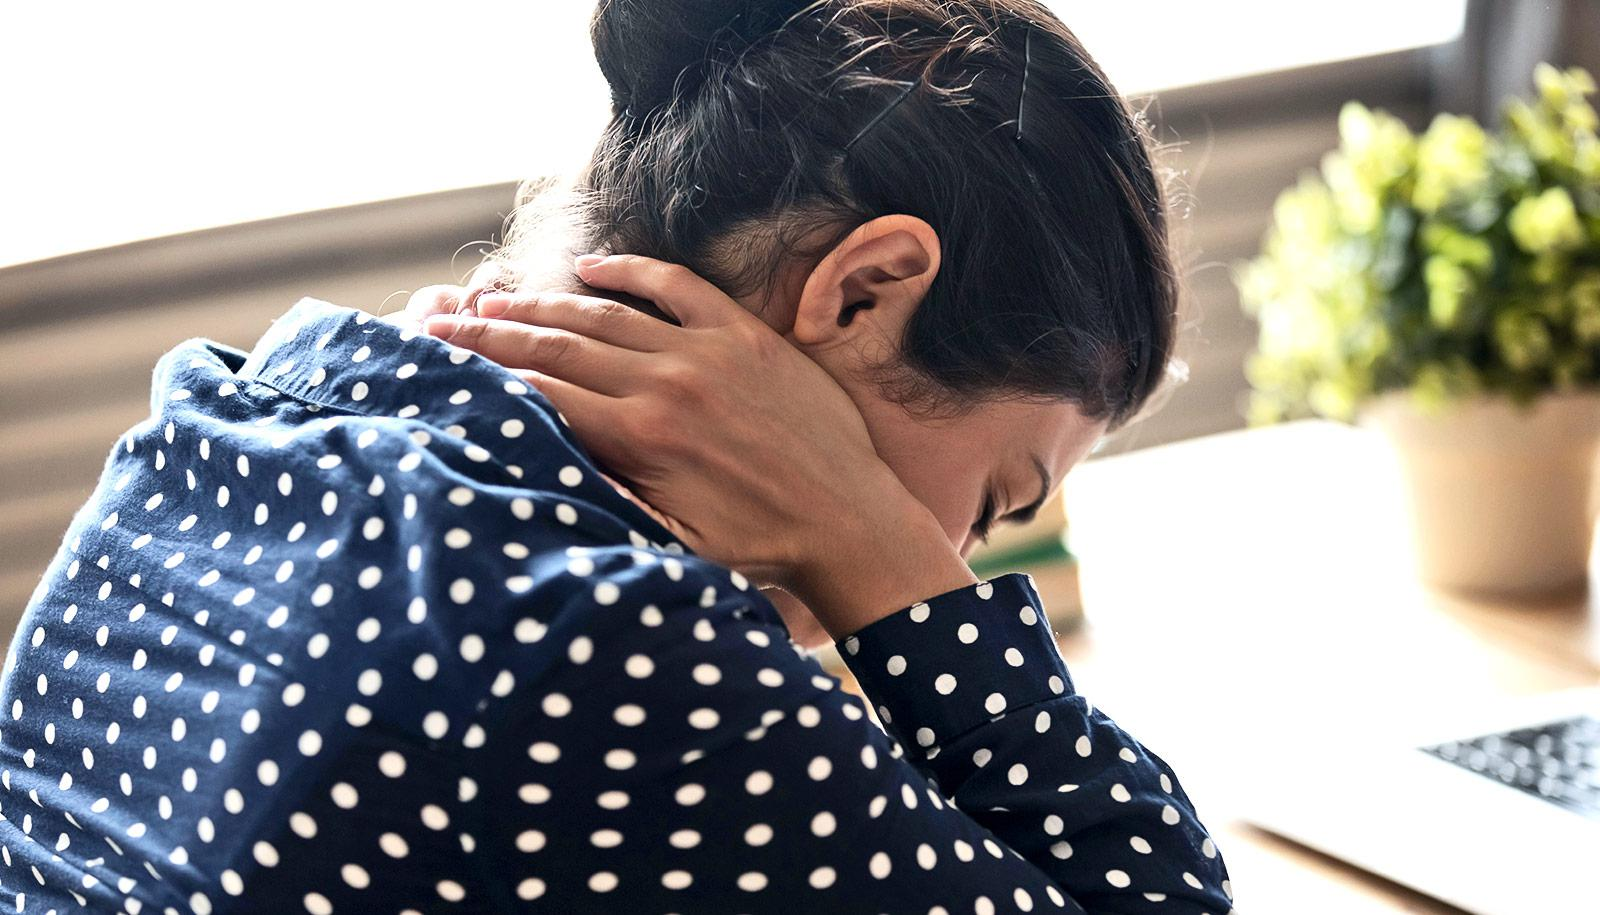 A woman at work holds the back of her neck while leaning down